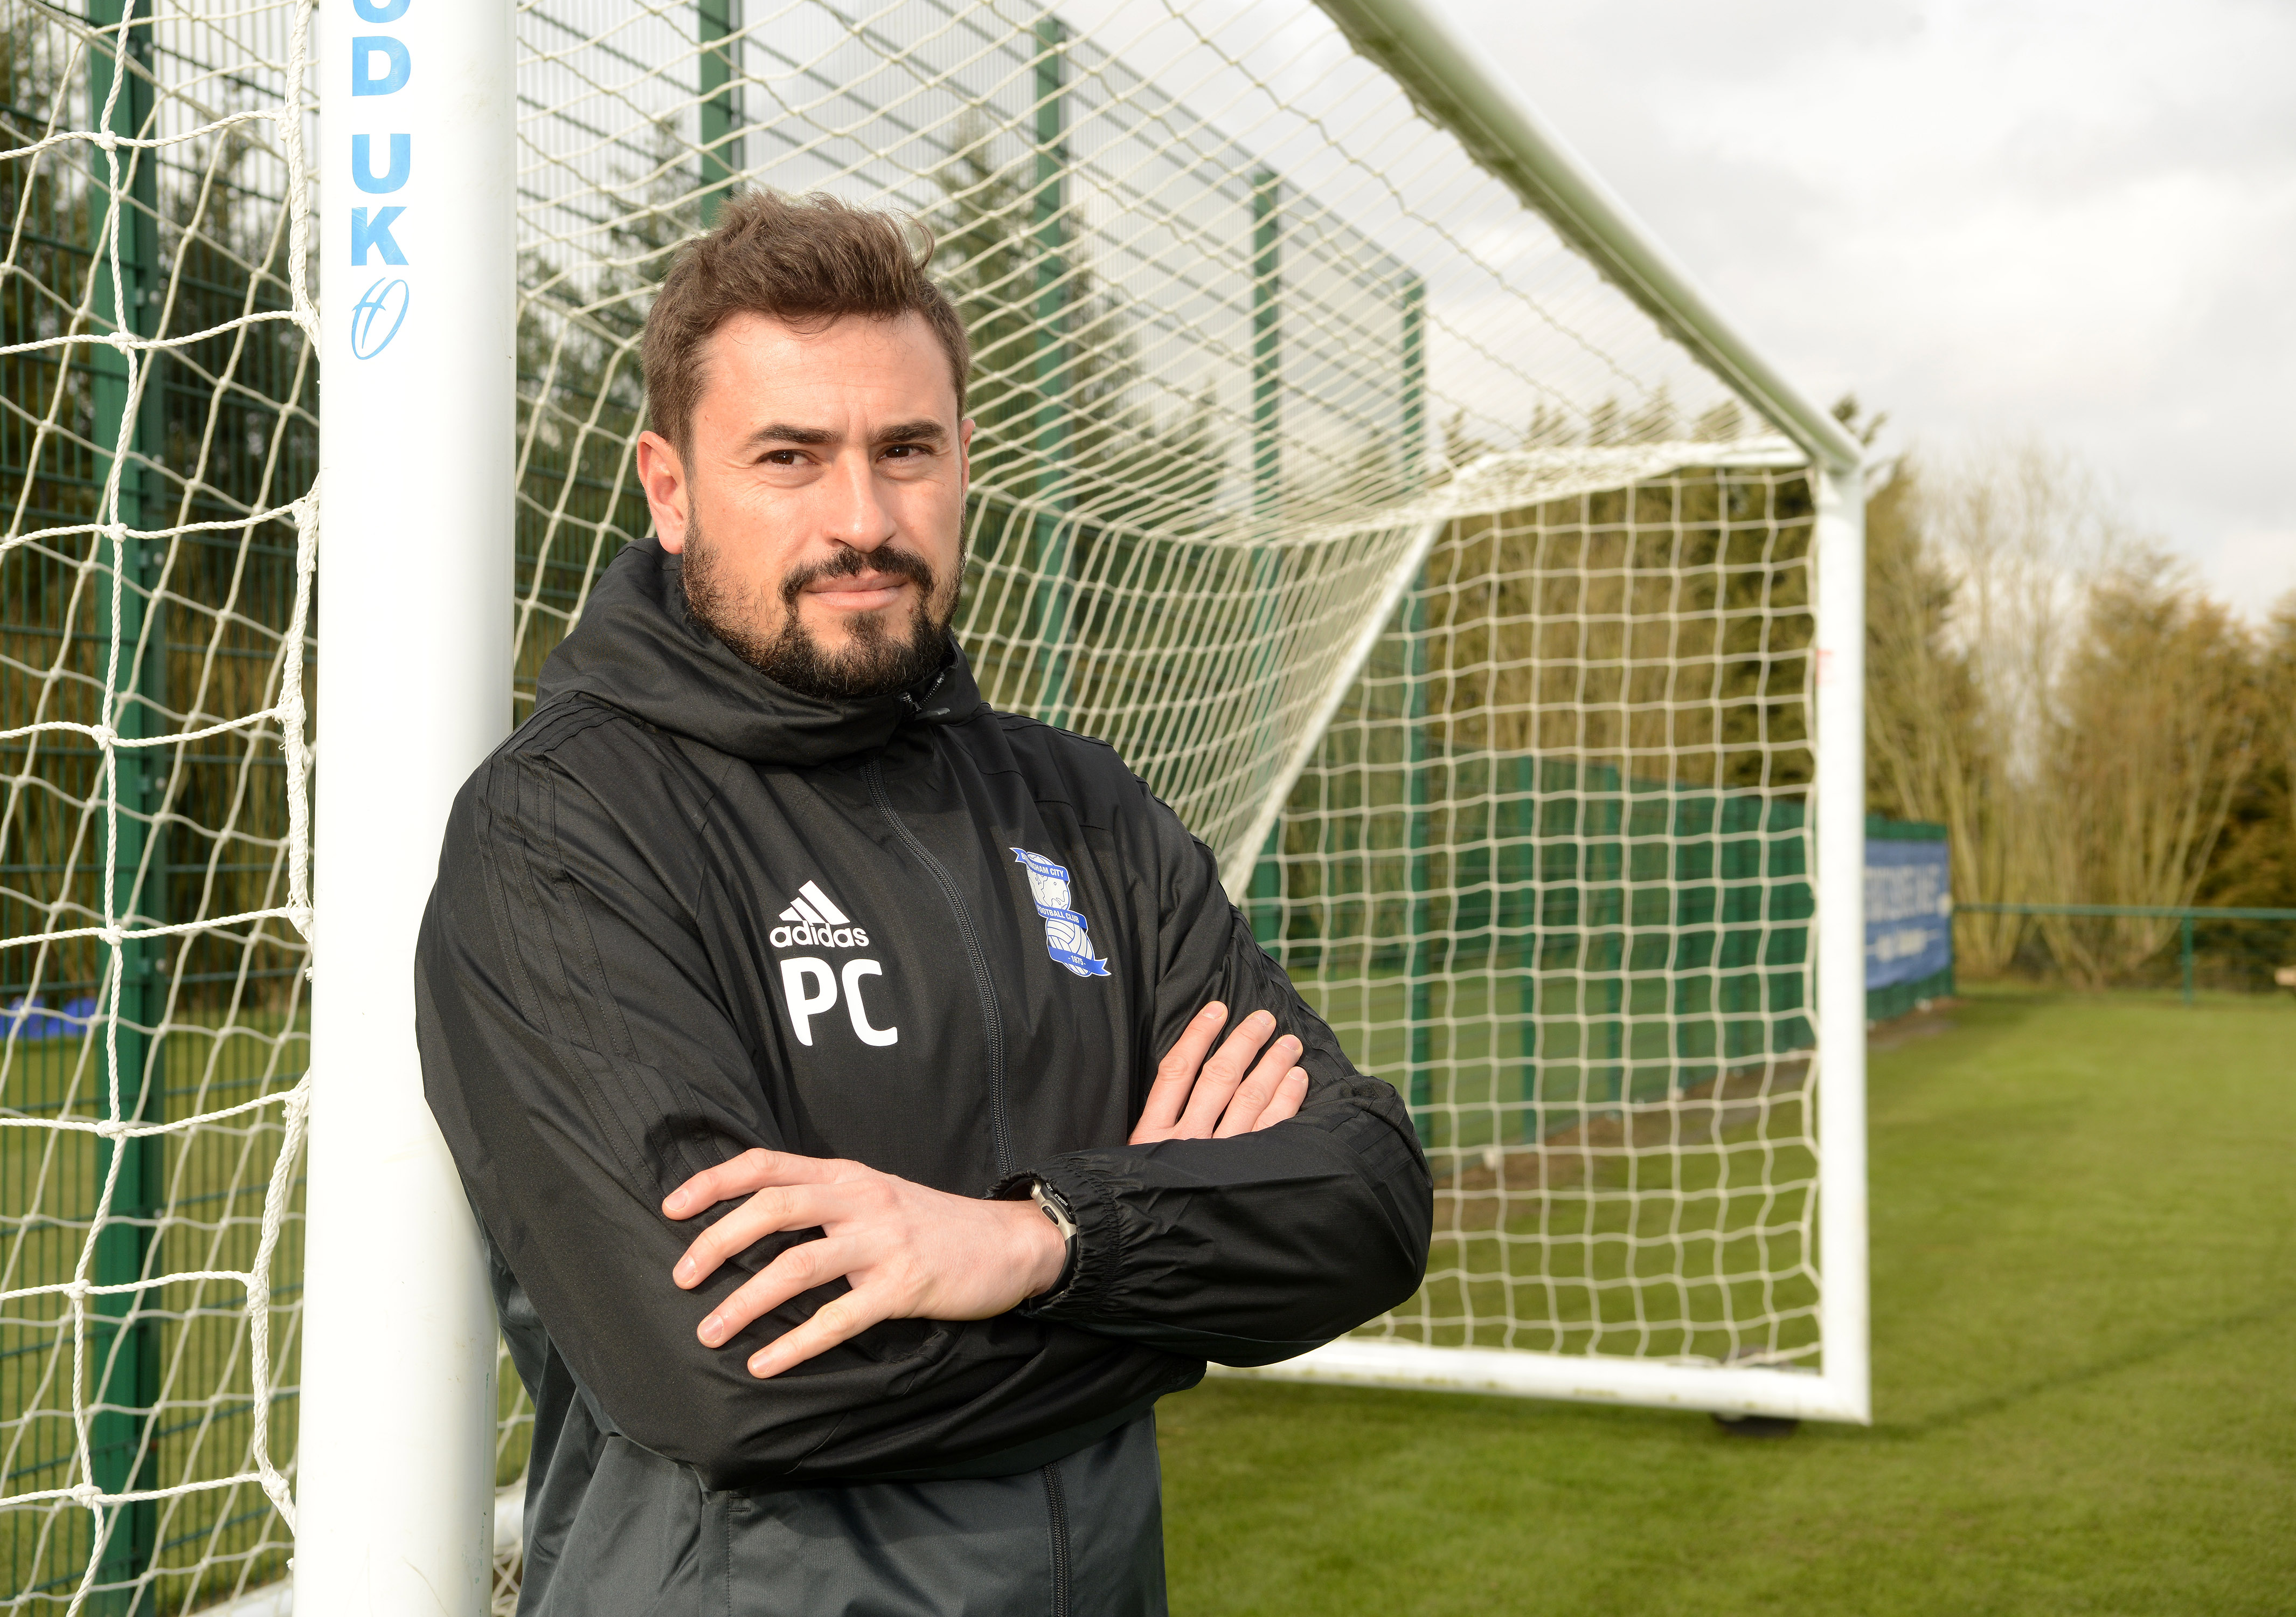 Pep Clotet analyses tactical systems seen in major leagues on latest Play Fútbol show